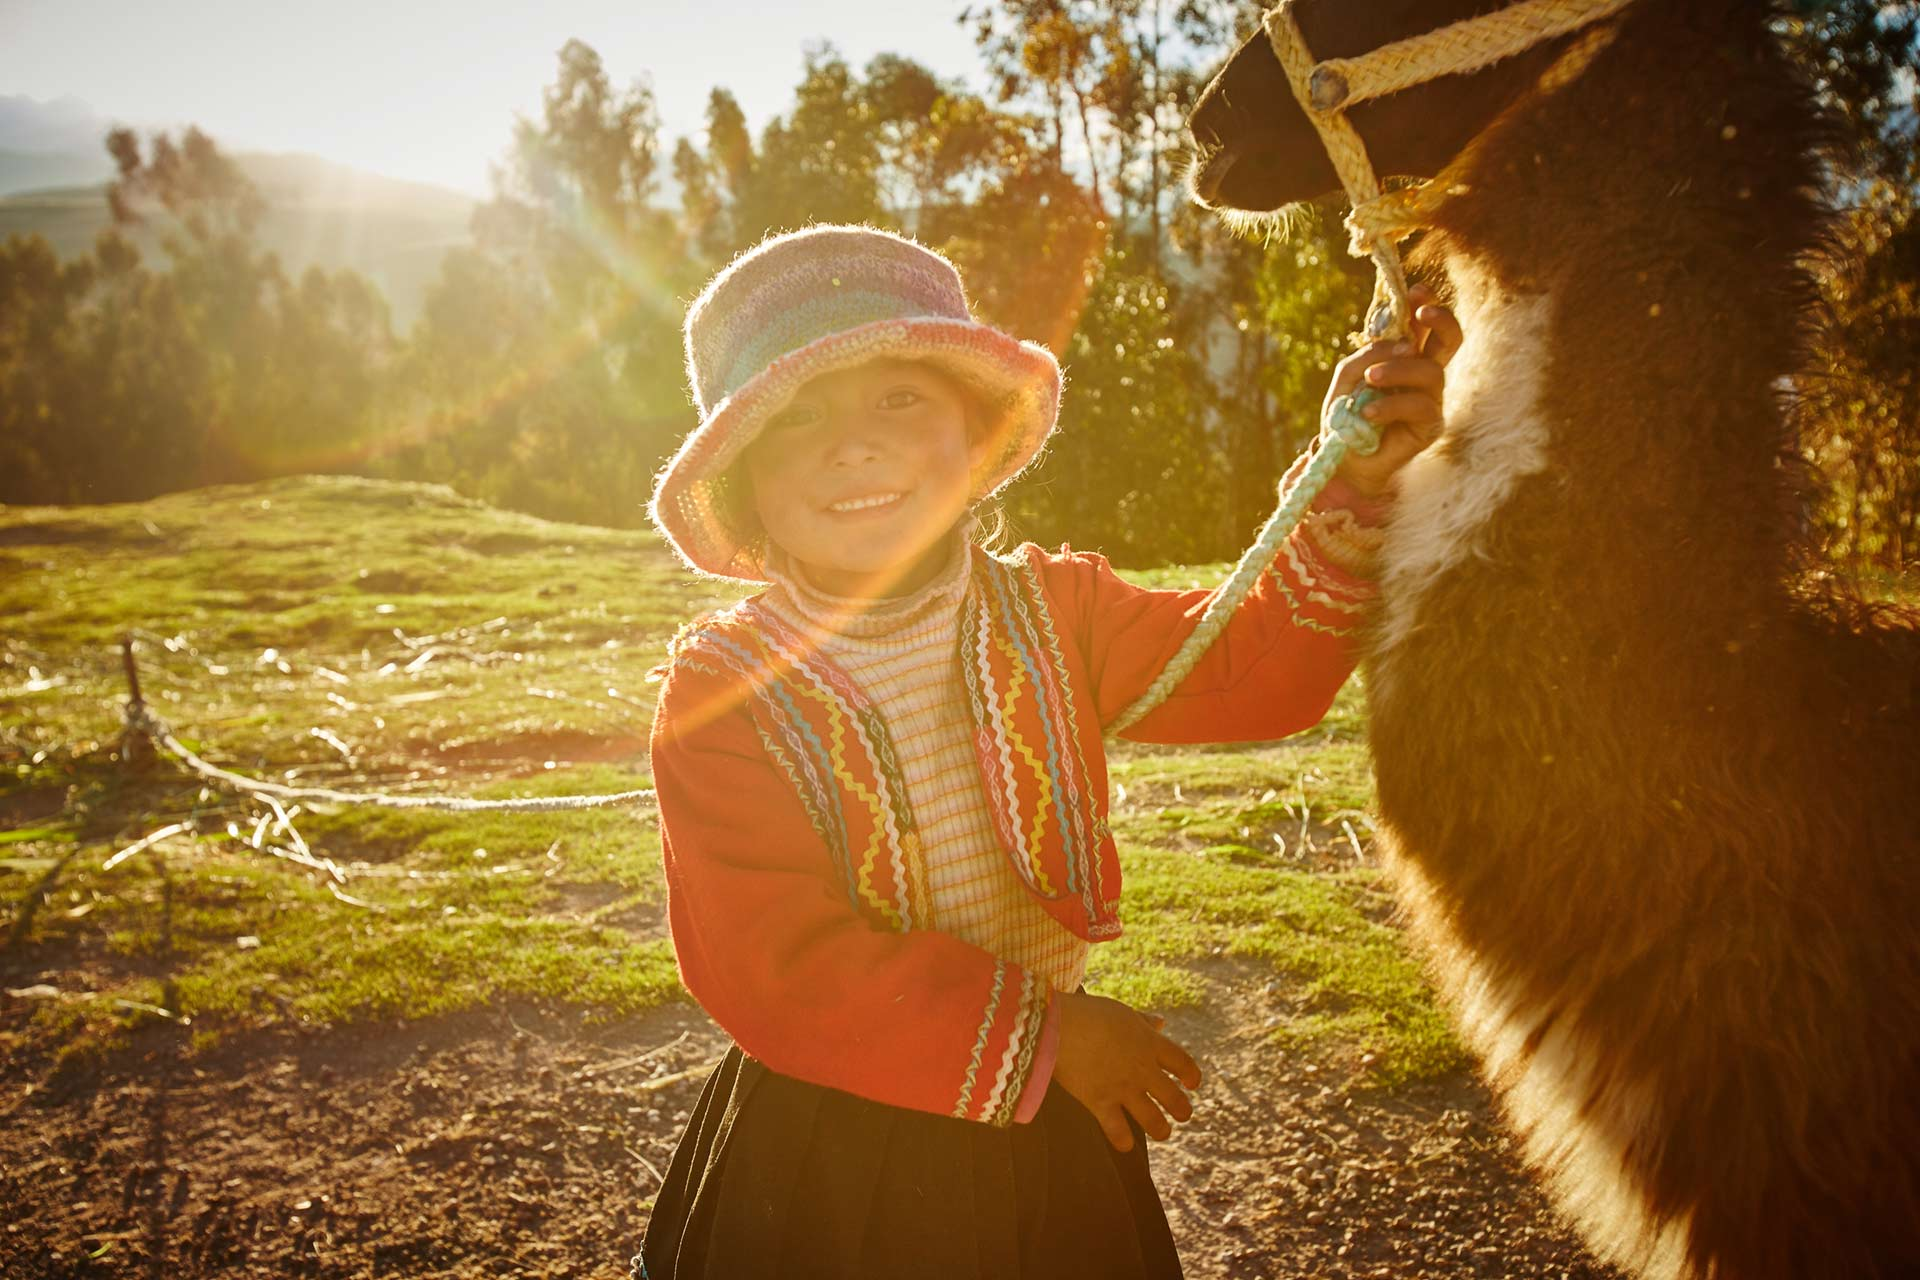 A child in Peru - Rohan Shrestha's photography